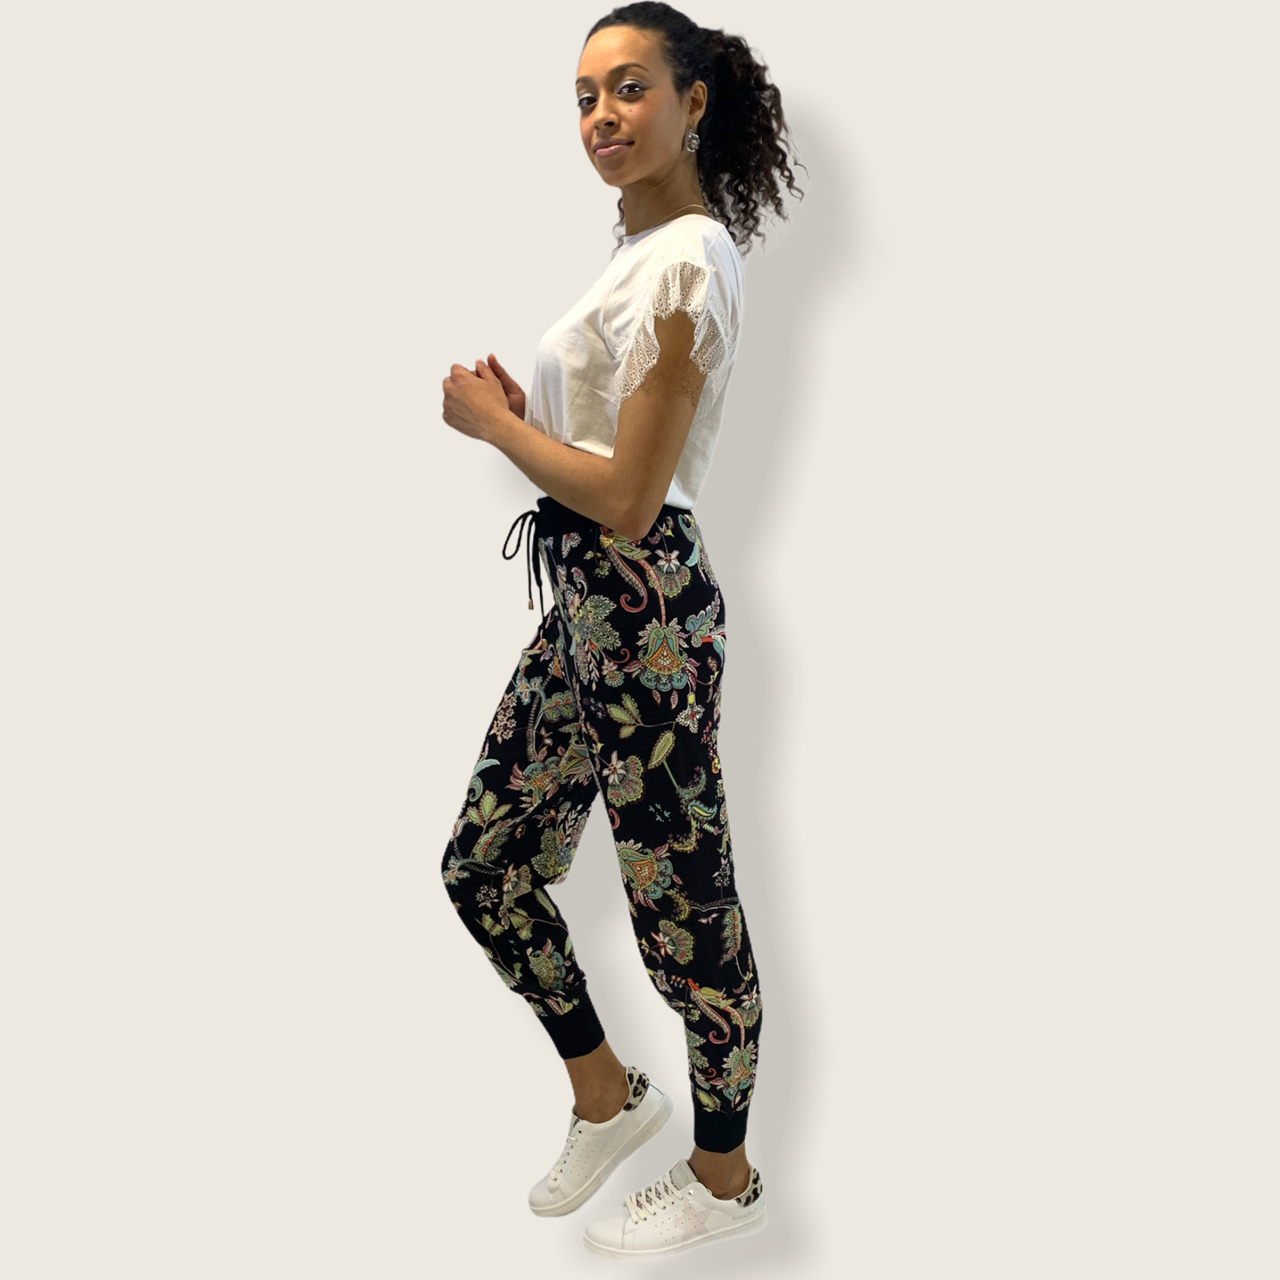 SHOPPING ON LINE TWINSET MILANO PANTALONE JOGGING NEW COLLECTION WOMEN'S SPRING SUMMER 2021